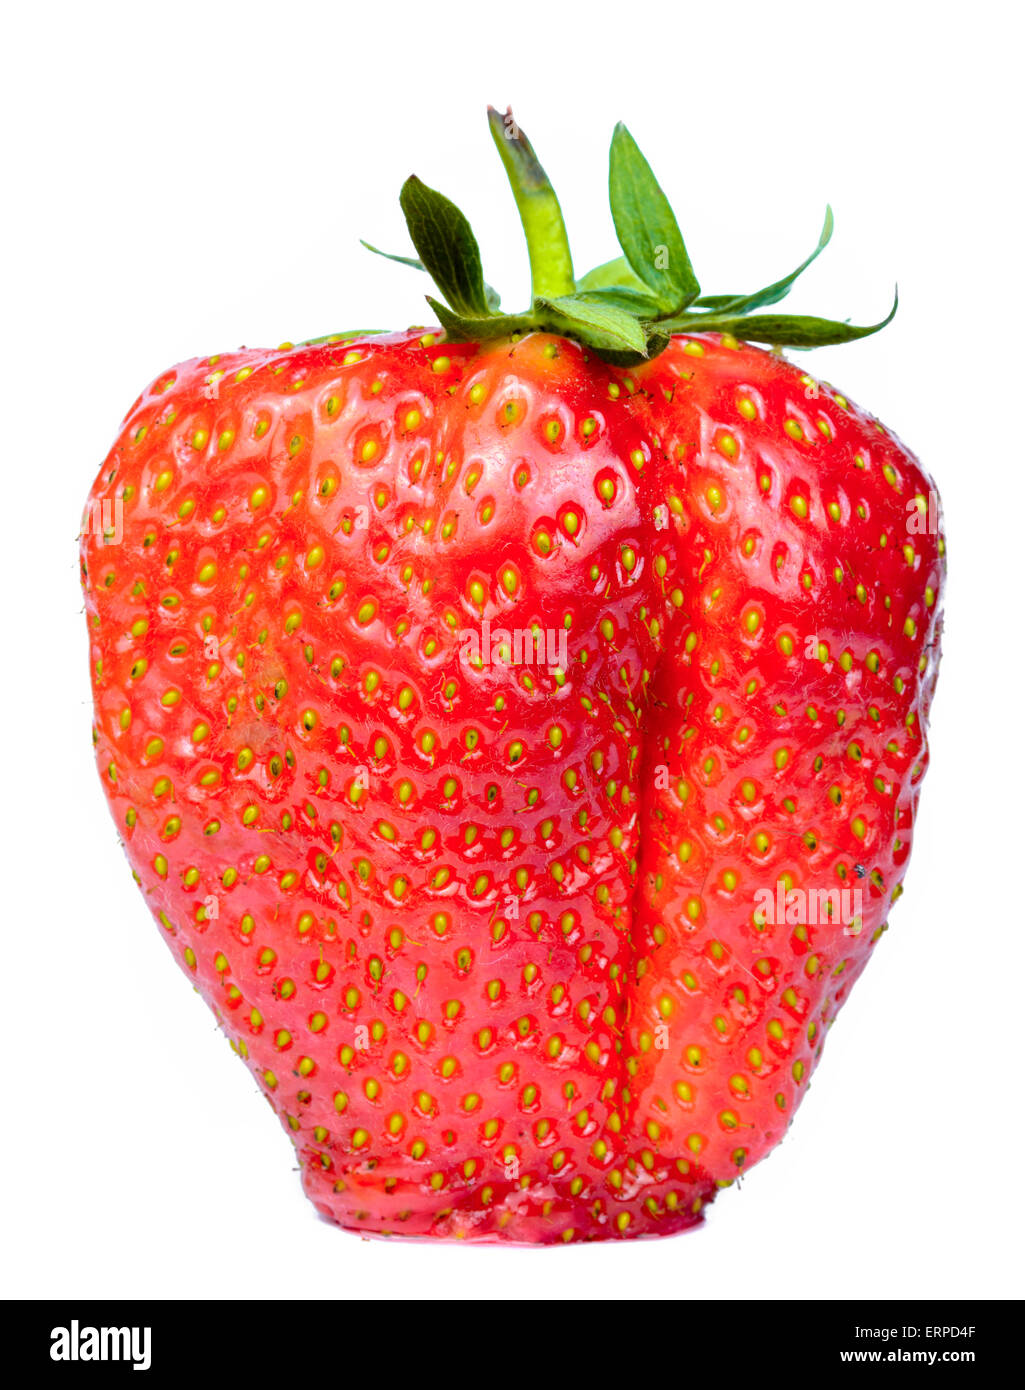 Large ripe English strawberry on a white background. - Stock Image